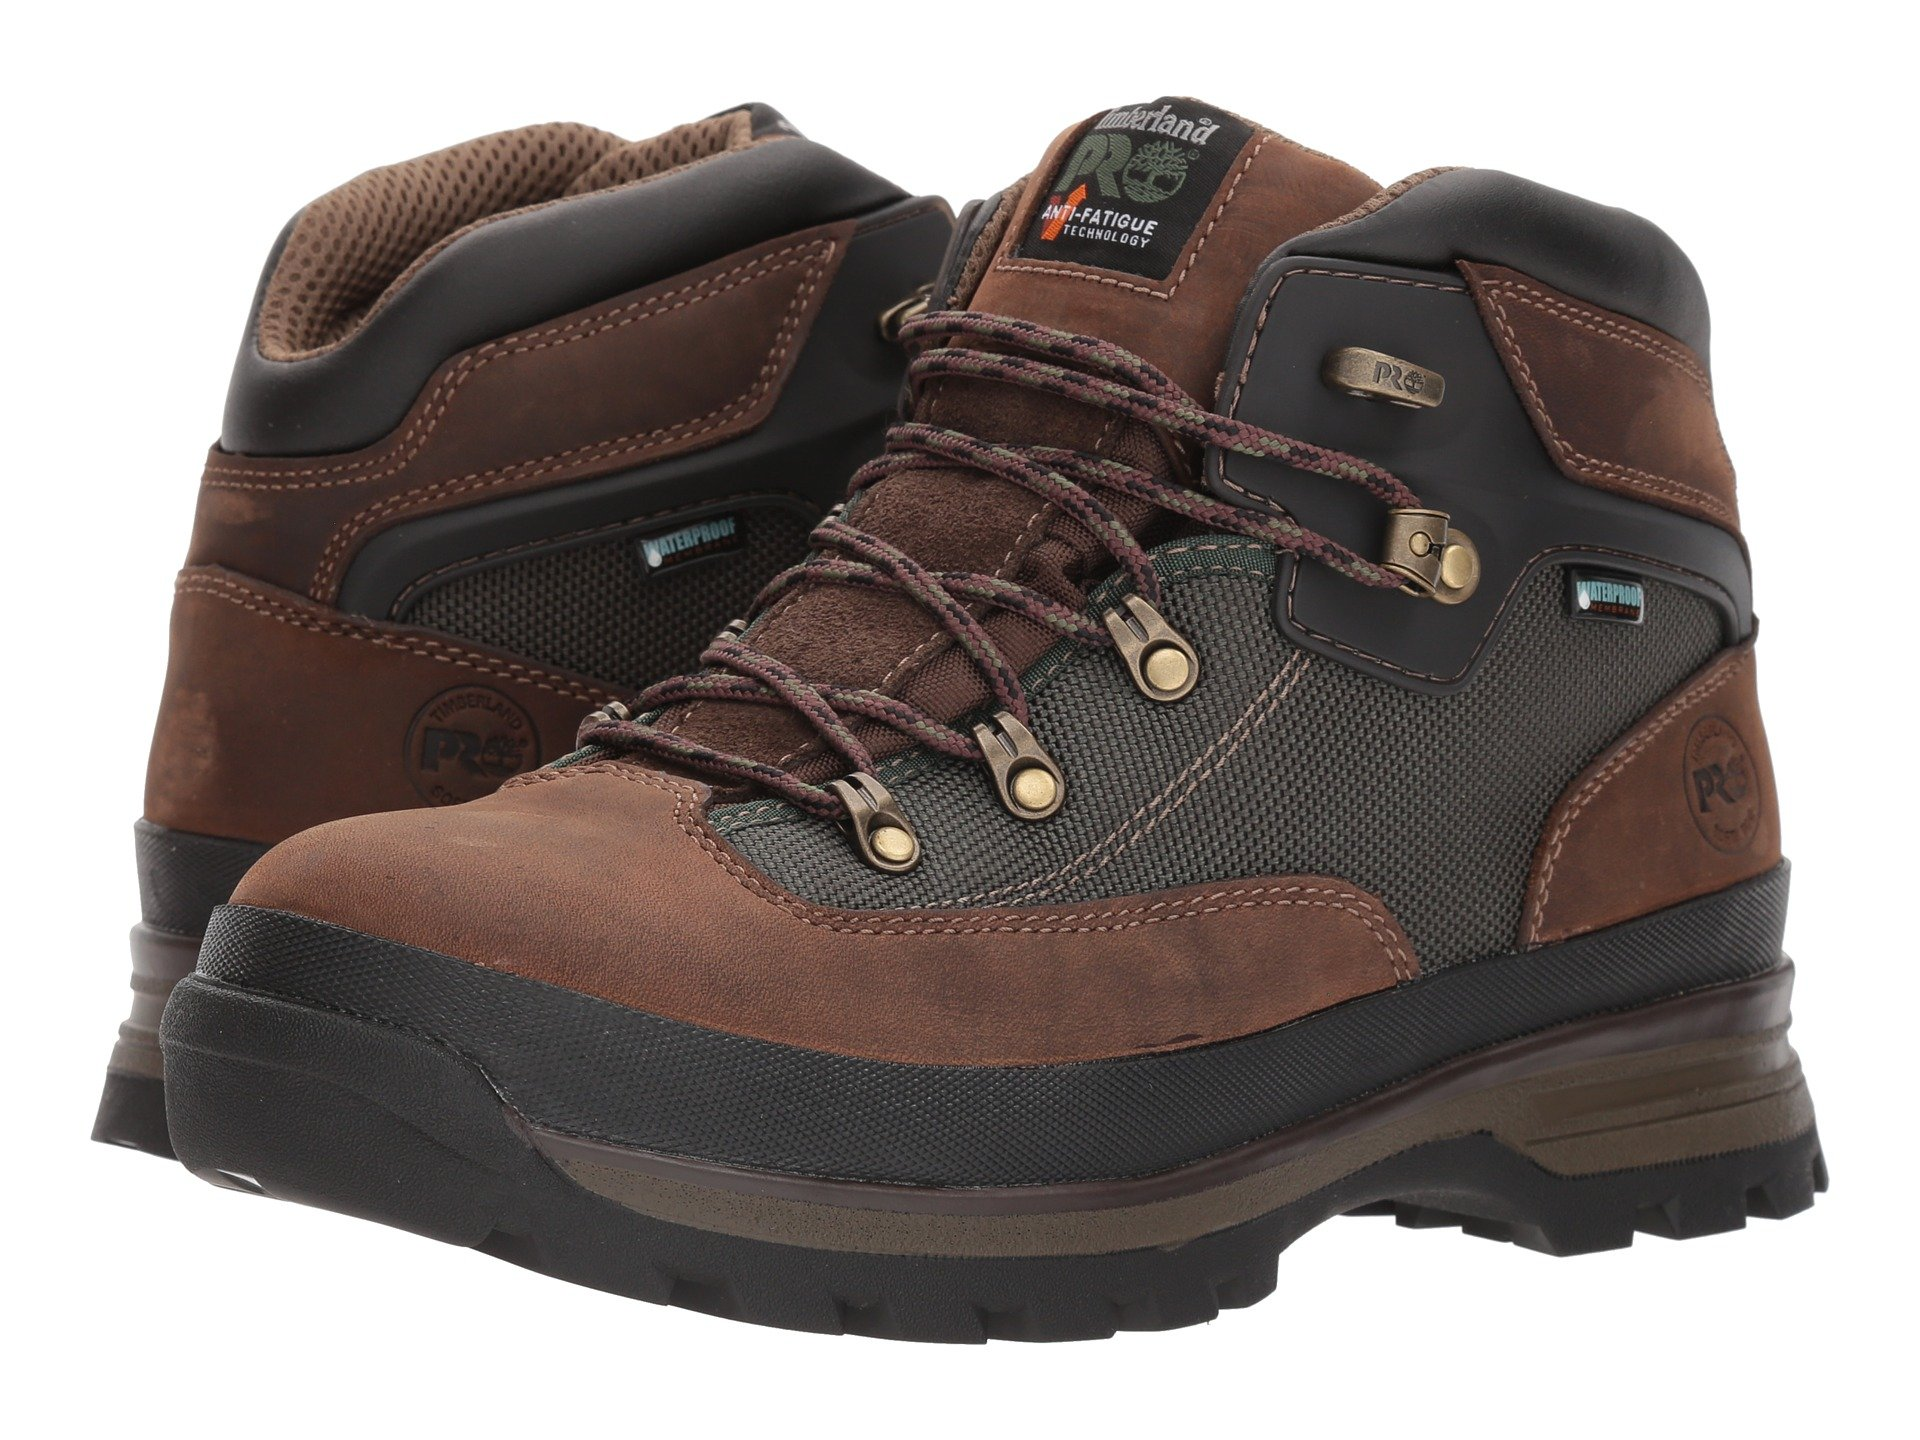 63e8dc642d Timberland turain waterproof ankle boot